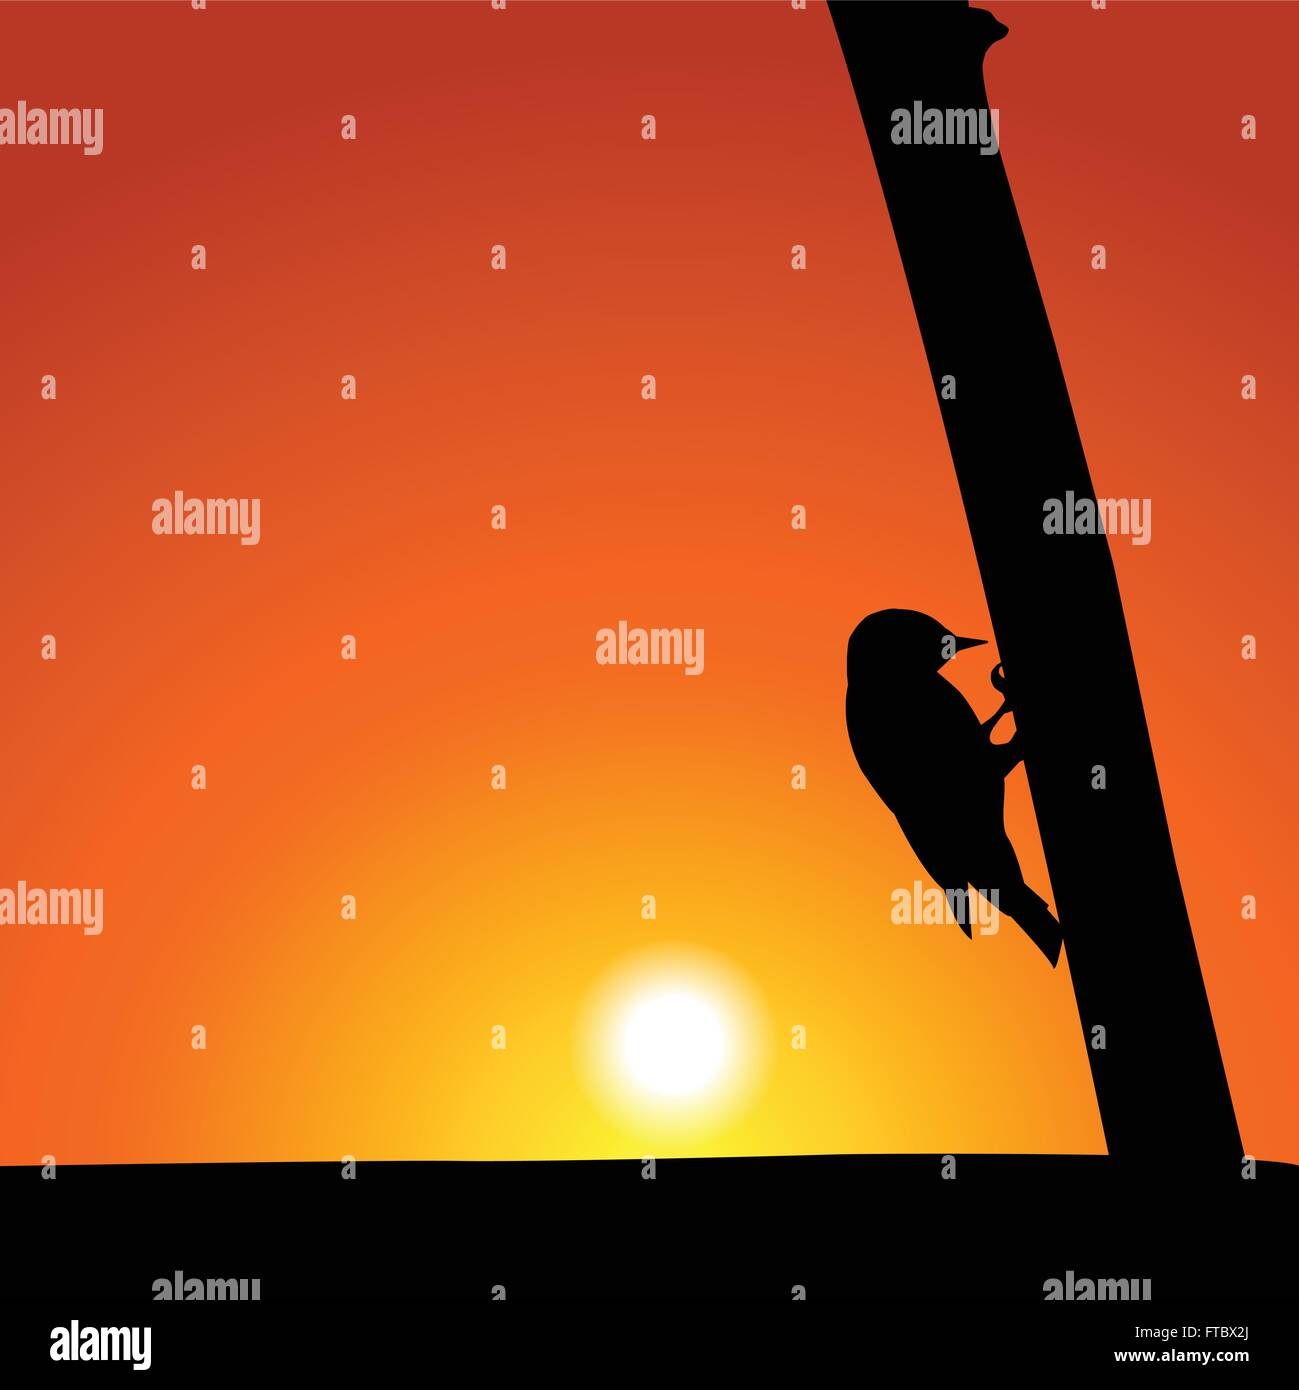 Woodpecker Silhouette At Sunset - Stock Vector